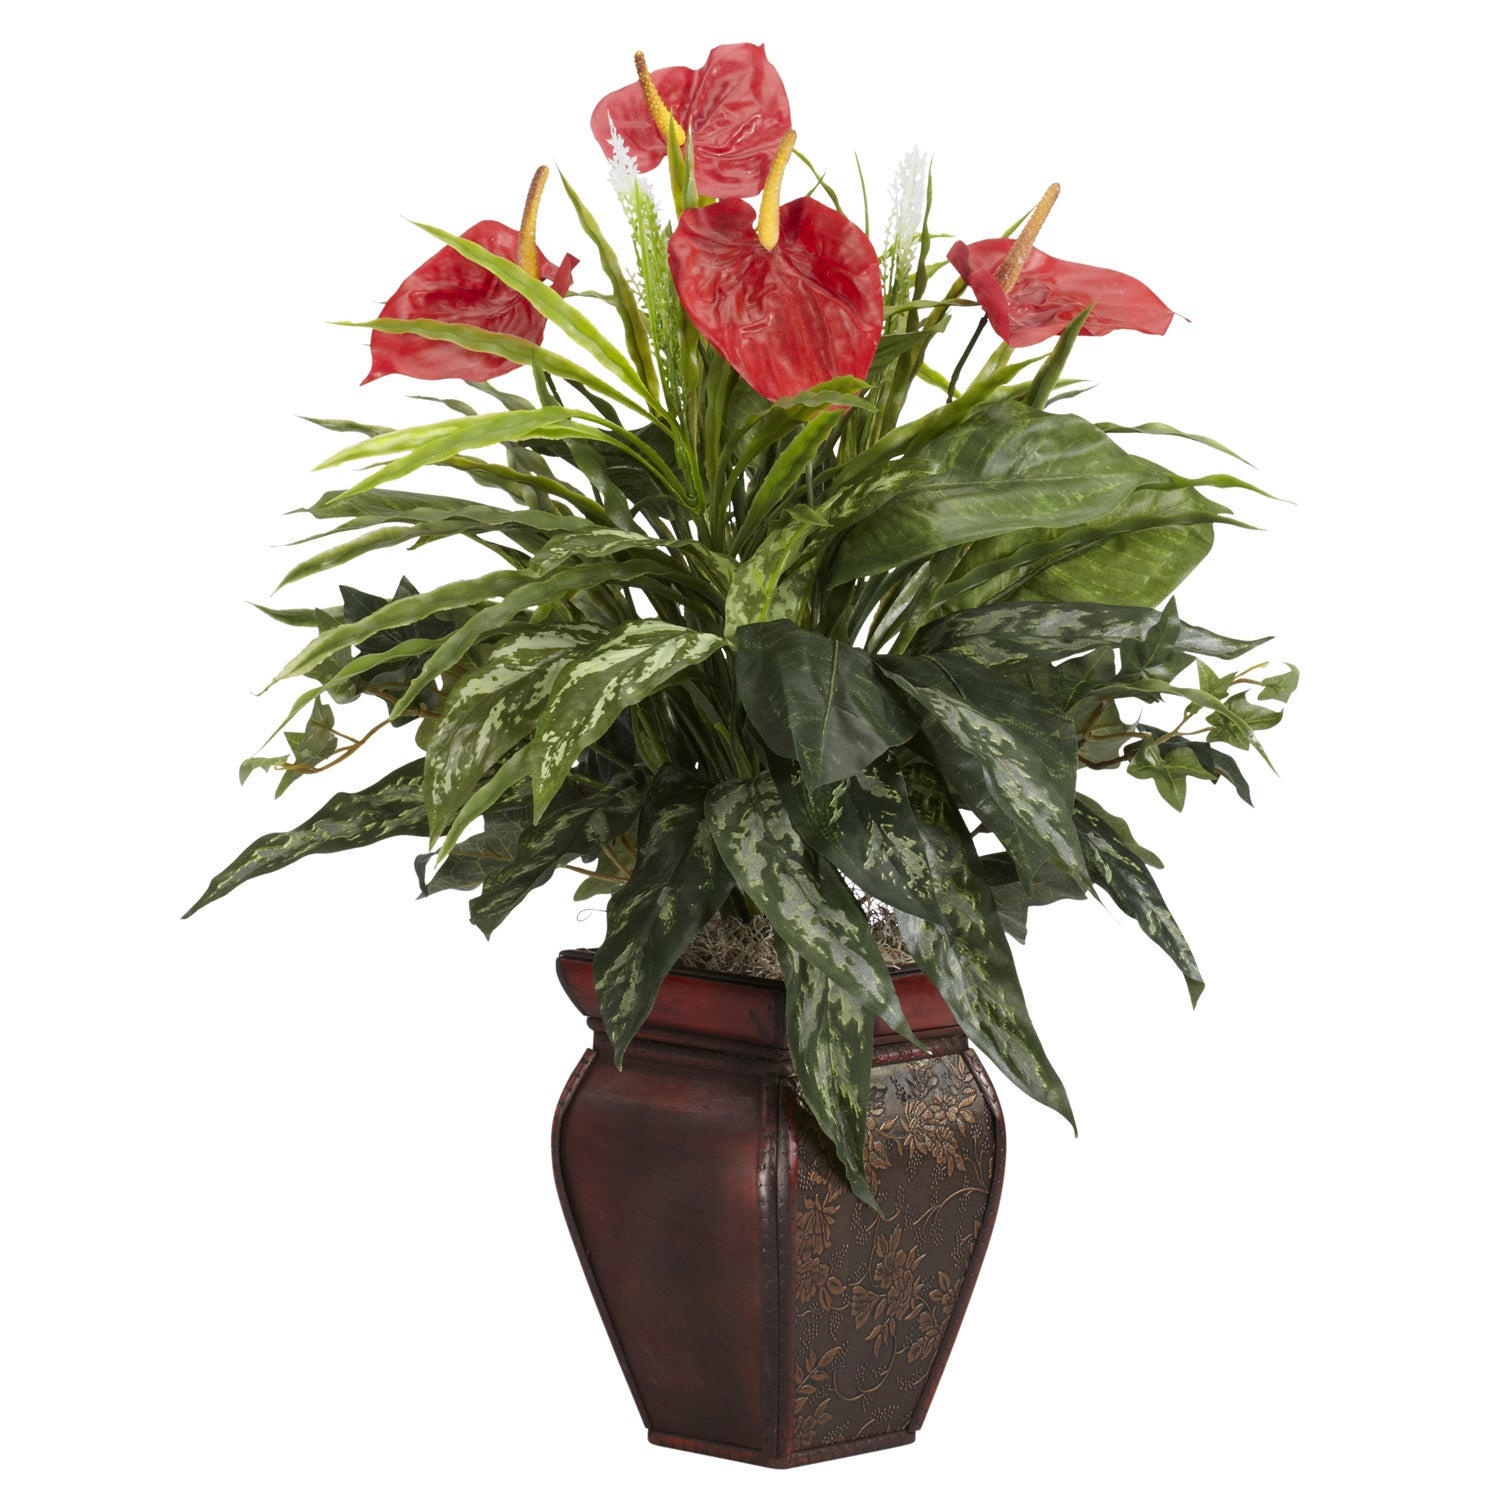 Mixed Greens and Anthurium with Decorative Vase Silk Plant